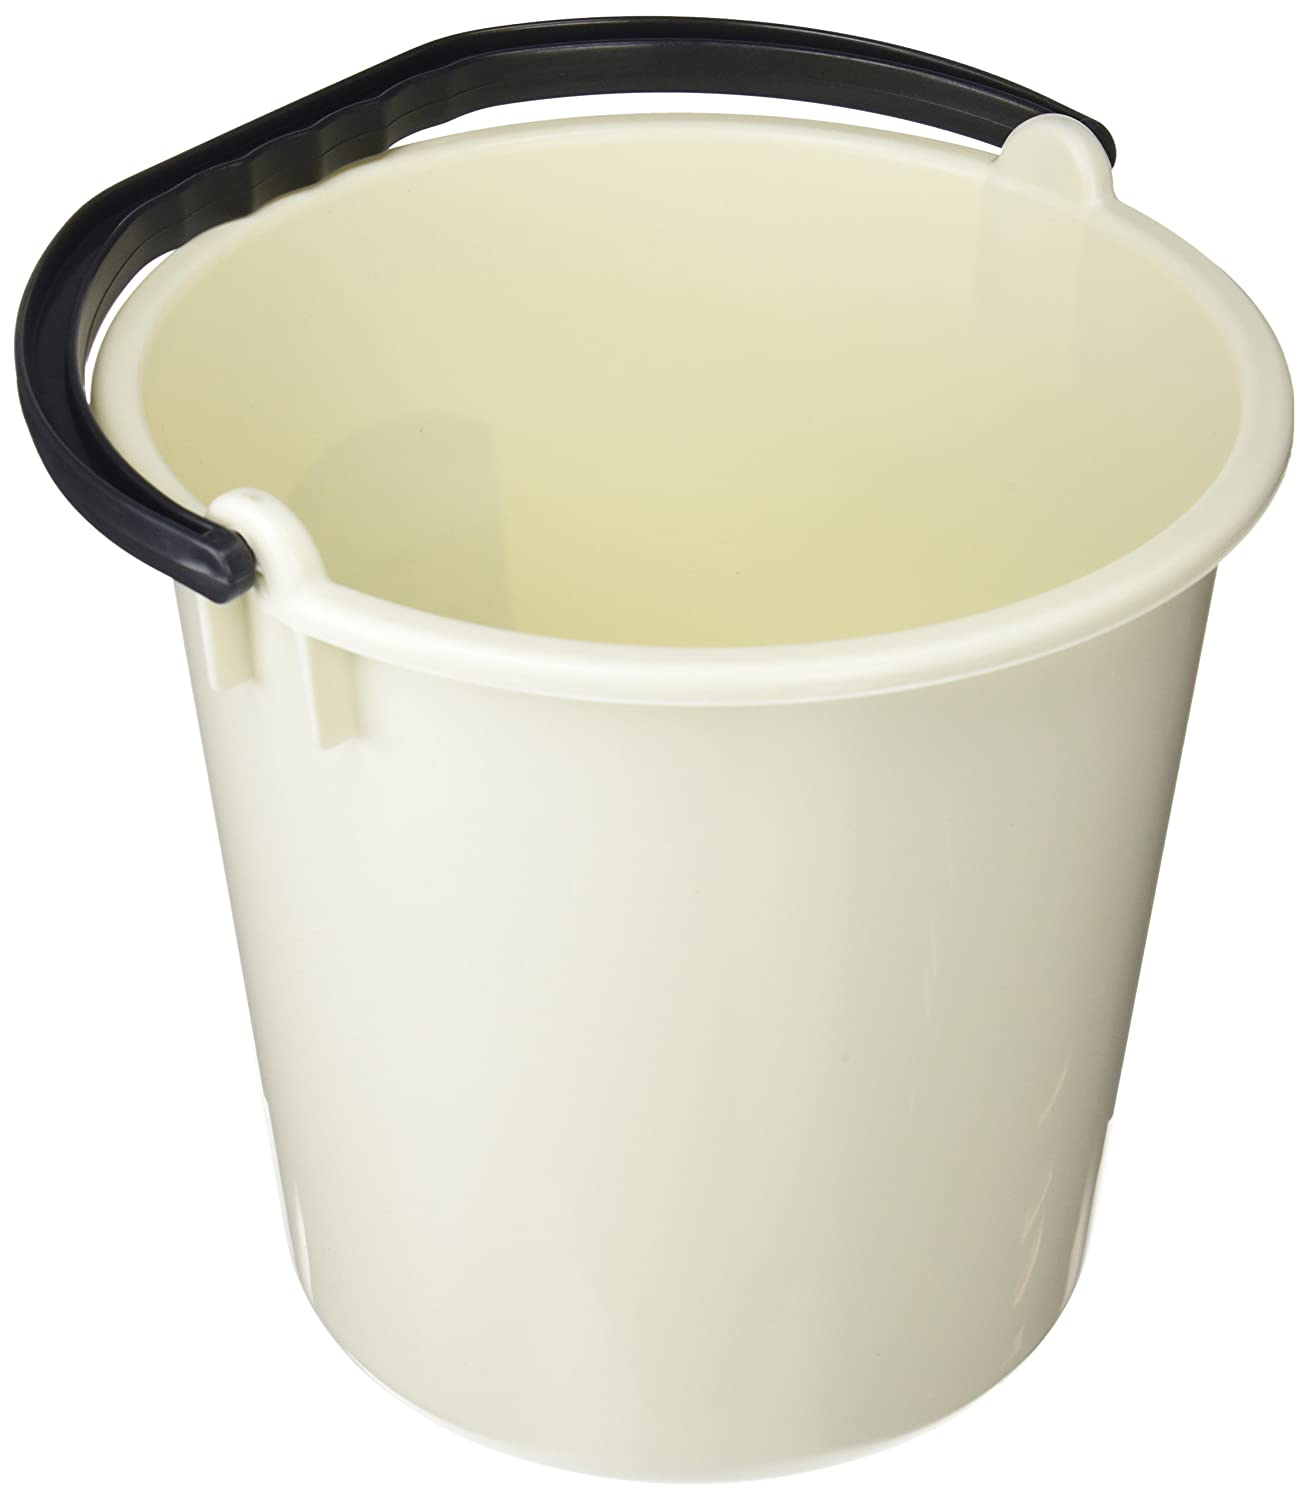 Addis 9 Litre Bucket with Grip Handle, Linen 351338